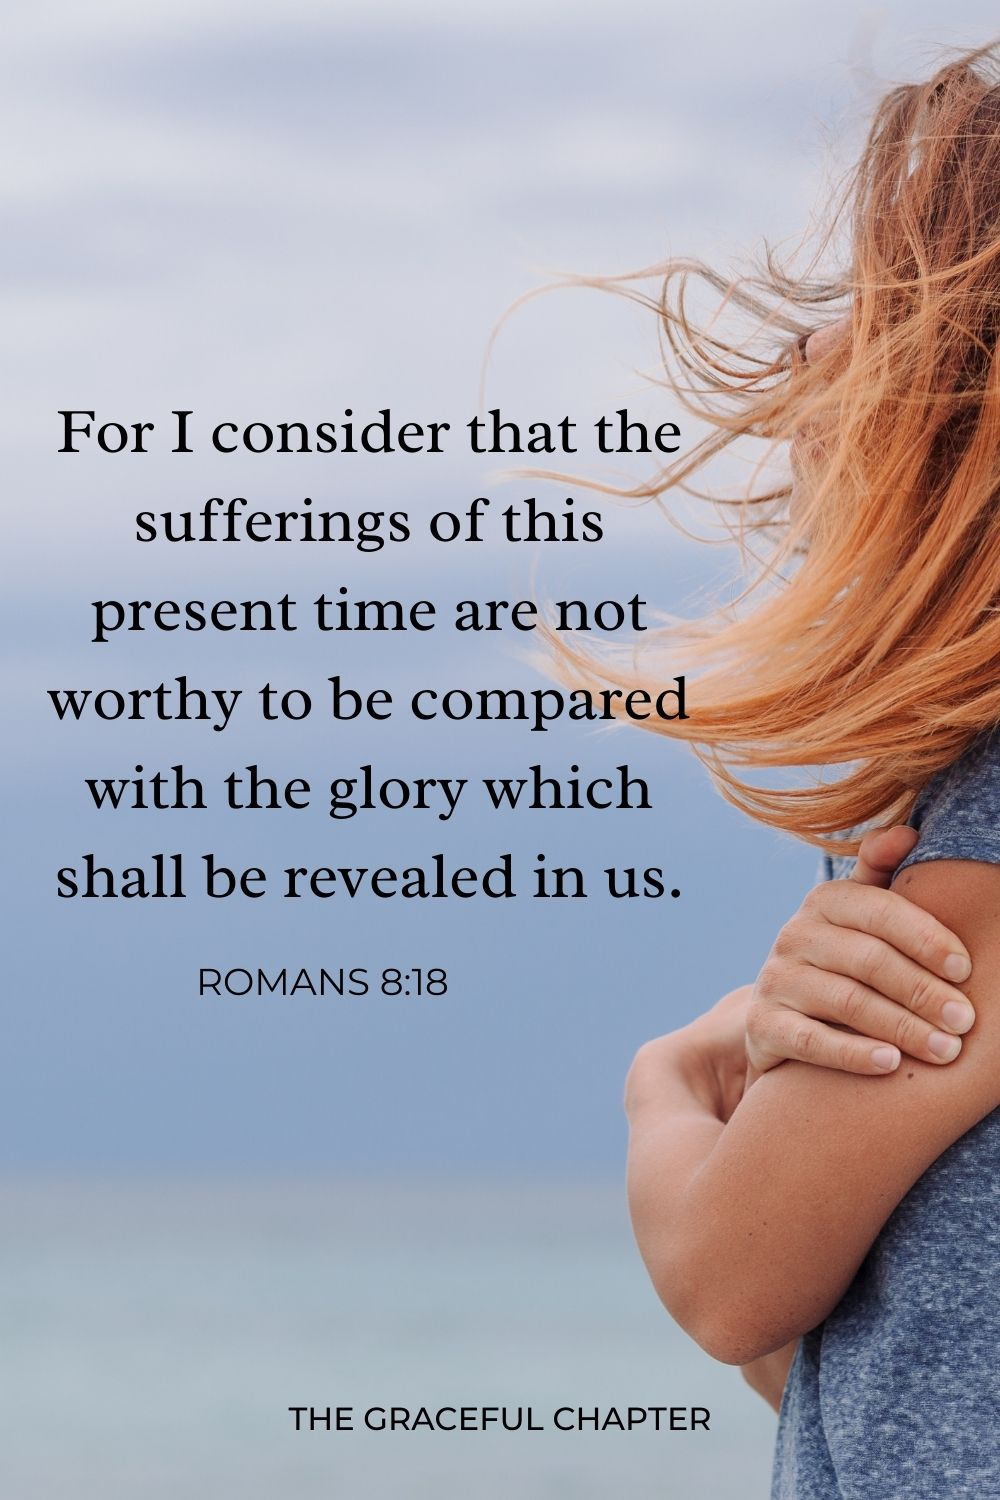 For I consider that the sufferings of this present time are not worthy to be compared with the glory which shall be revealed in us. Romans 8:18